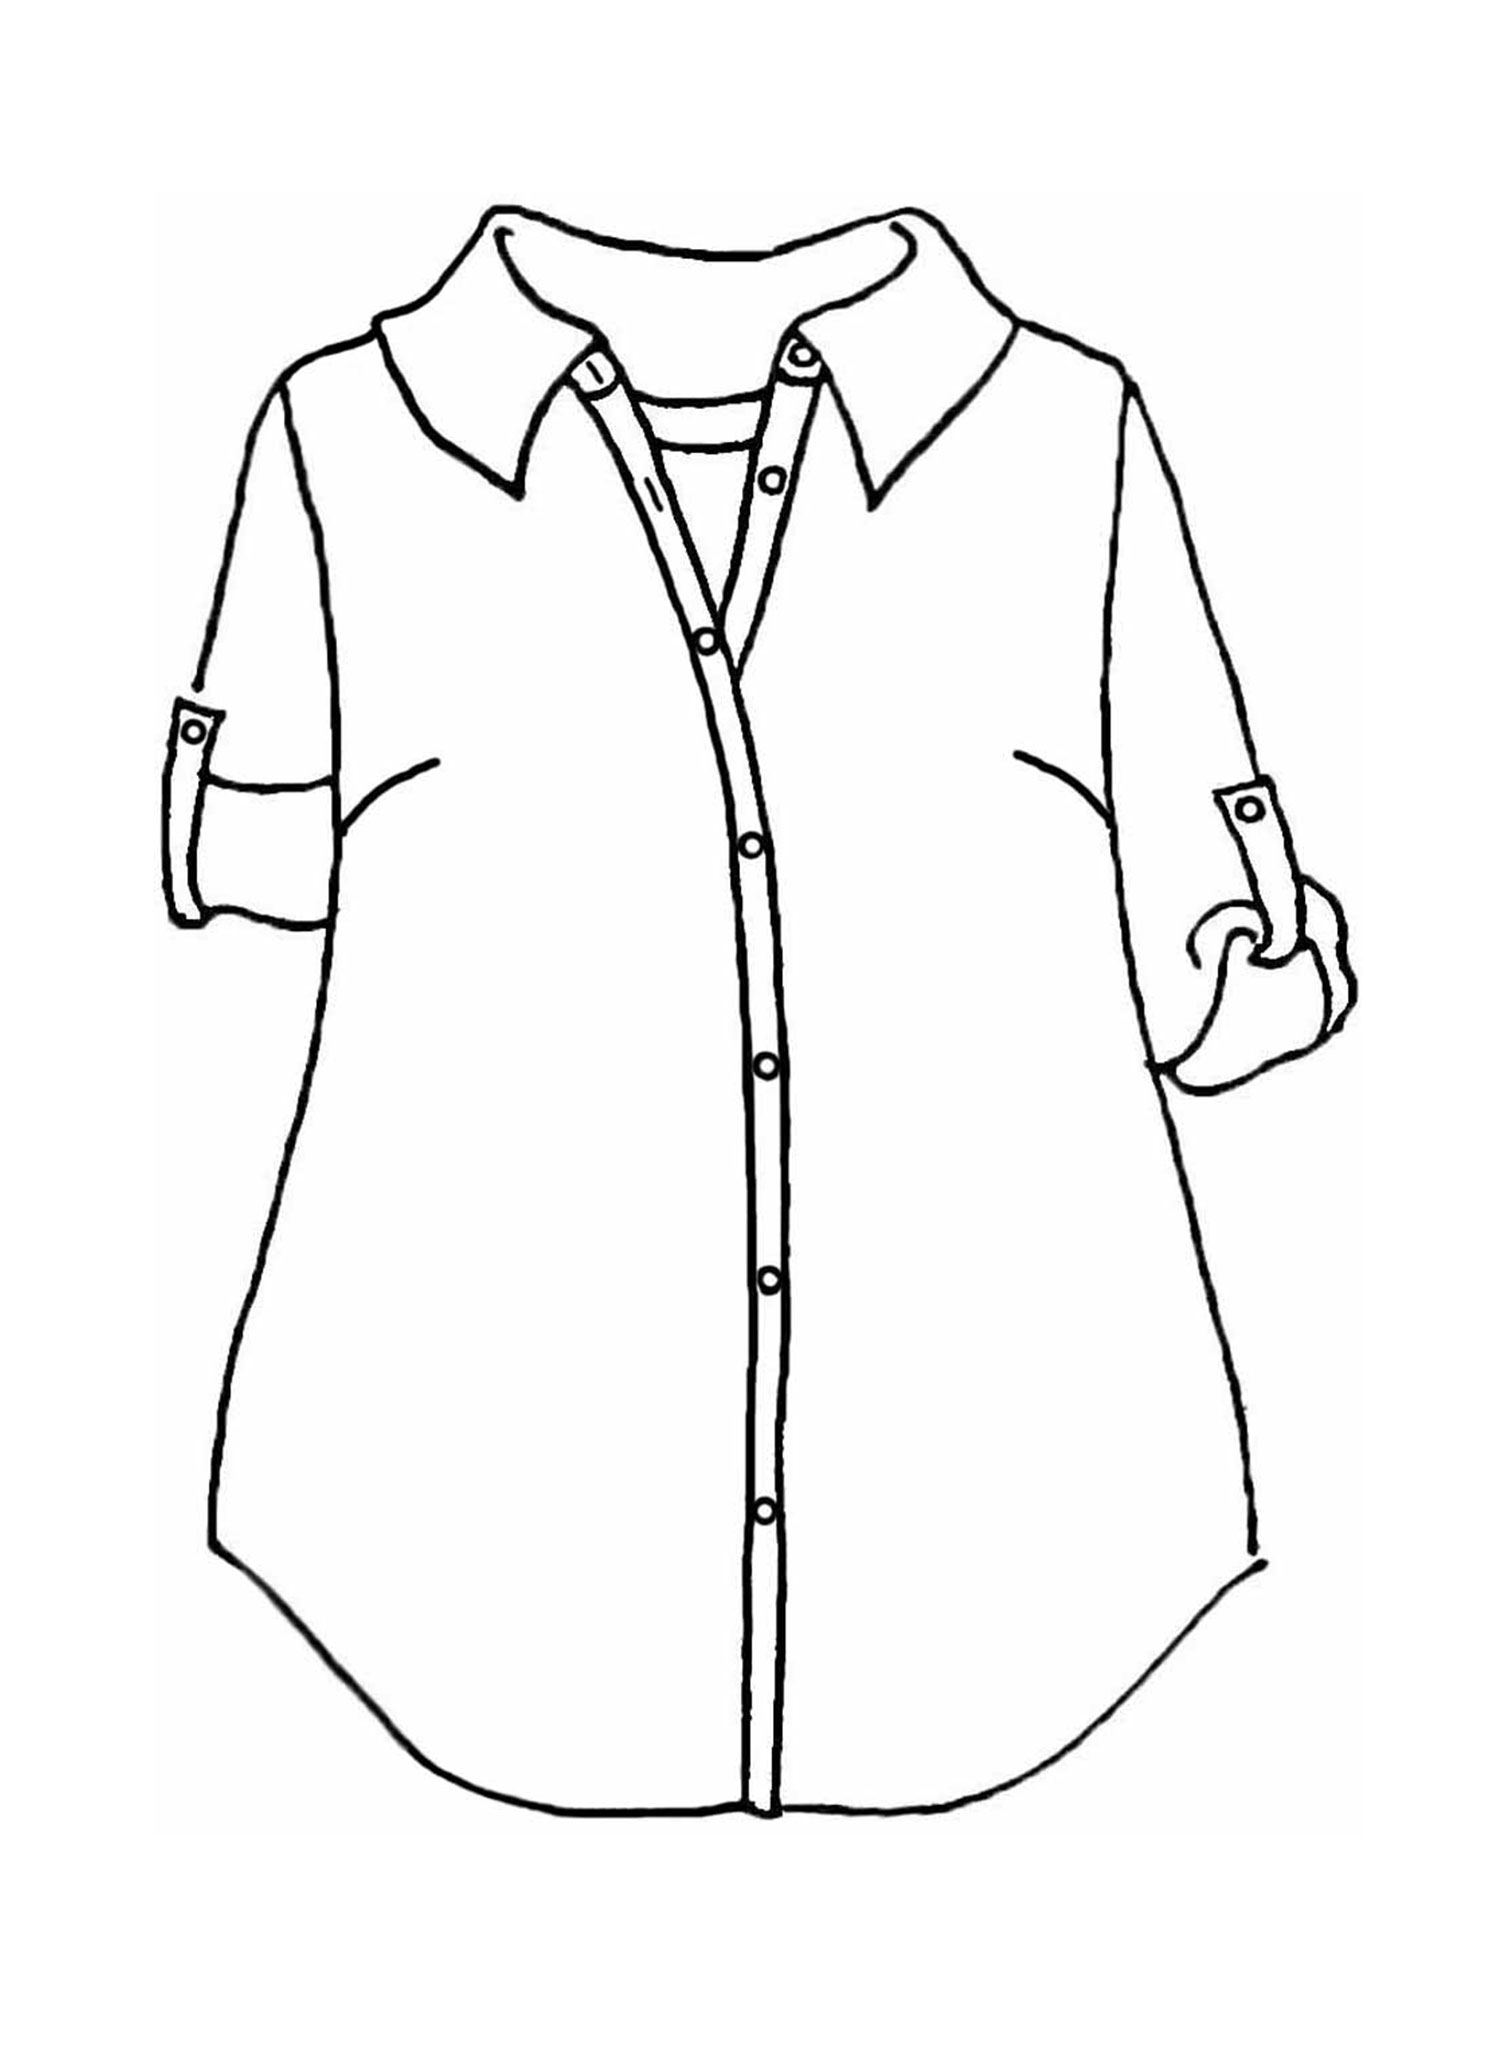 Work Shirt sketch image